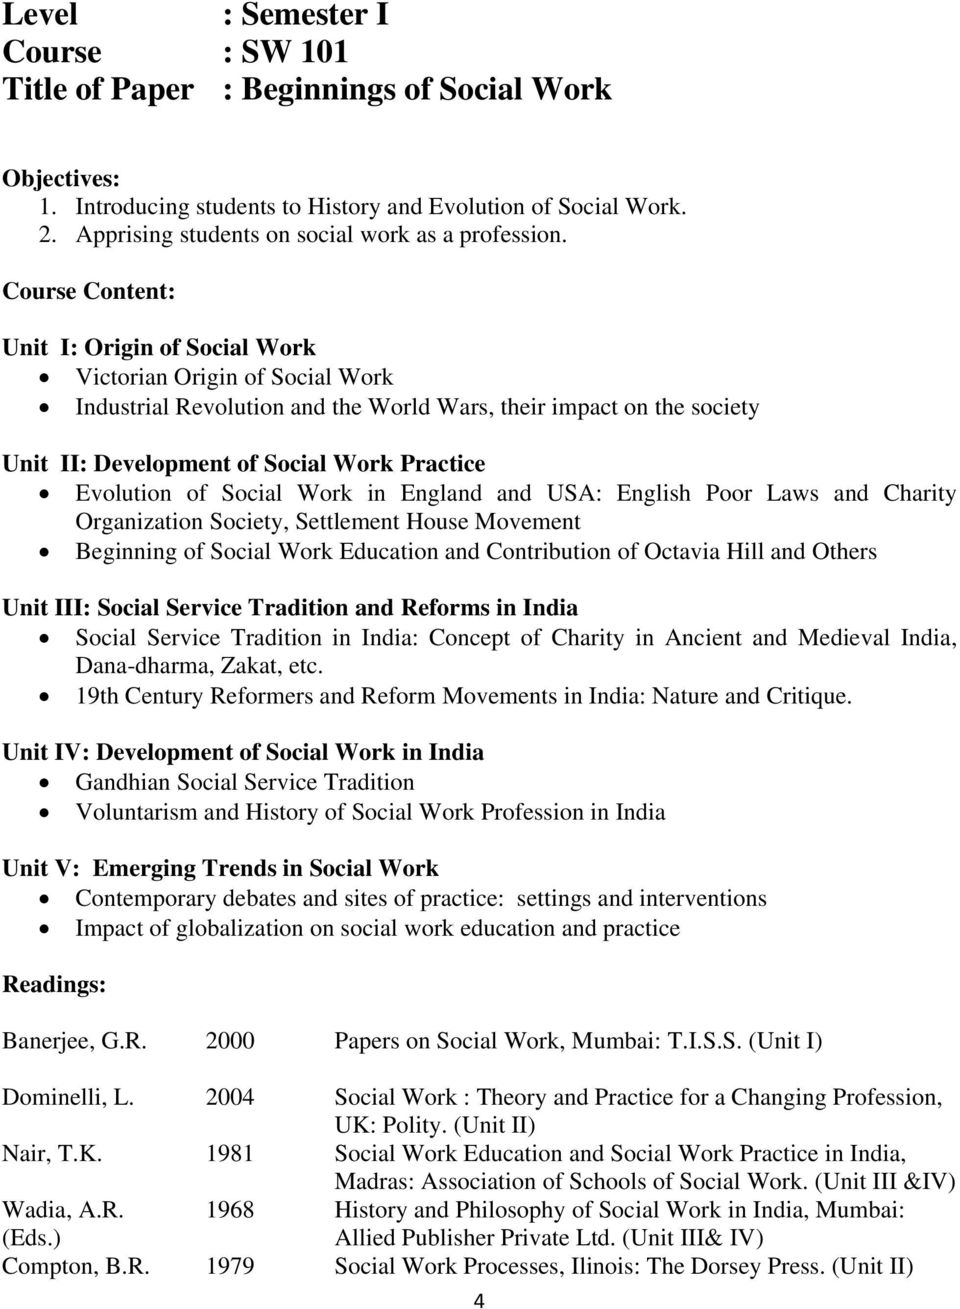 Course Content: Unit I: Origin of Social Work Victorian Origin of Social Work Industrial Revolution and the World Wars, their impact on the society Unit II: Development of Social Work Practice